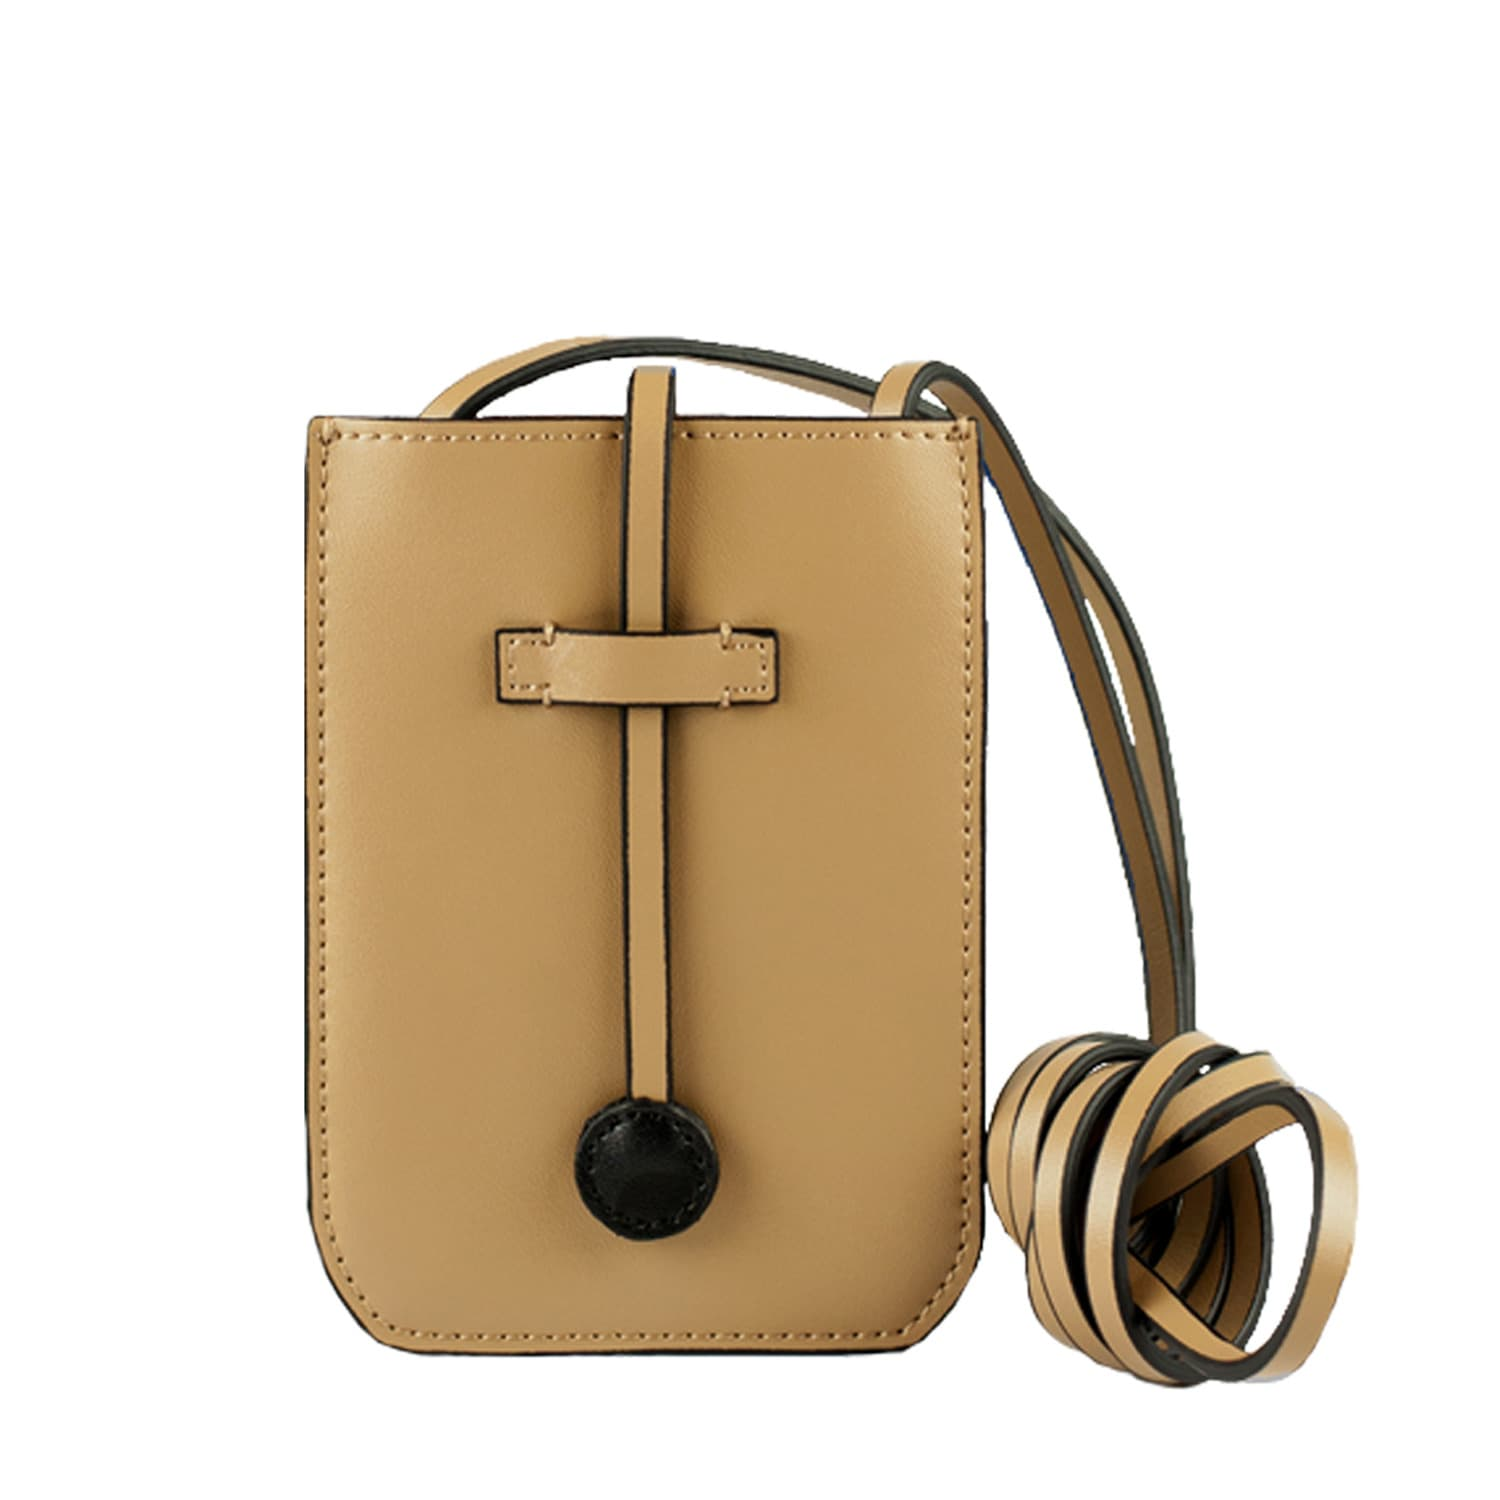 a96d0f71f066 Cambridge Leather Phone Crossbody Bag Taupe image